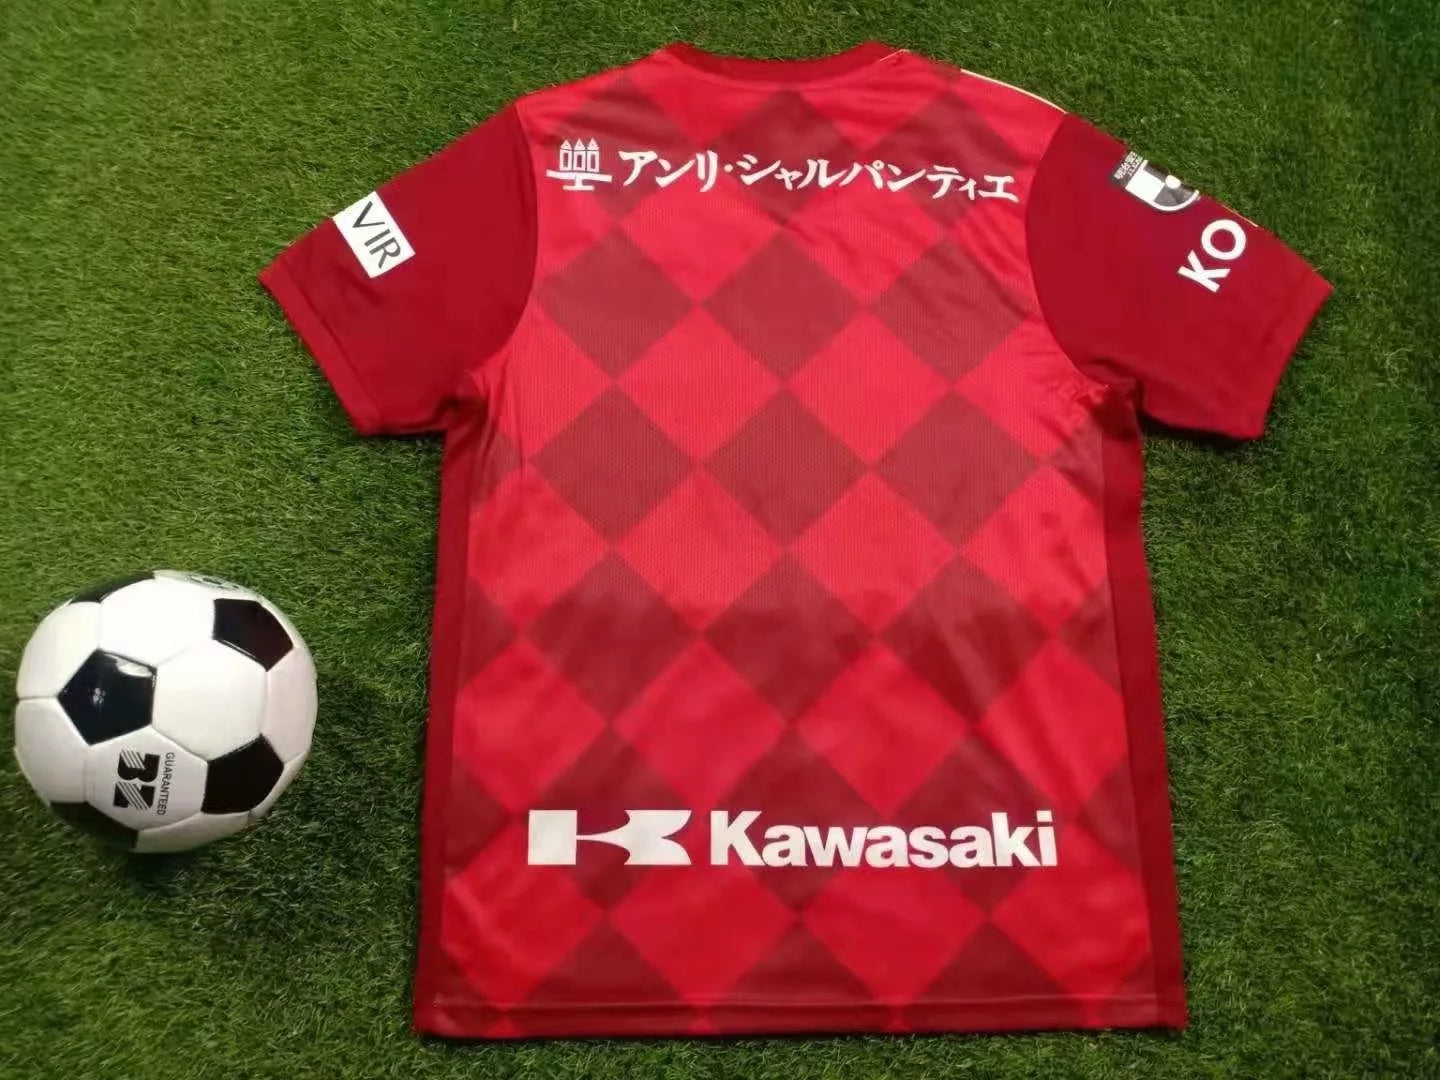 Vissel Kobe 20-21 Home Kit